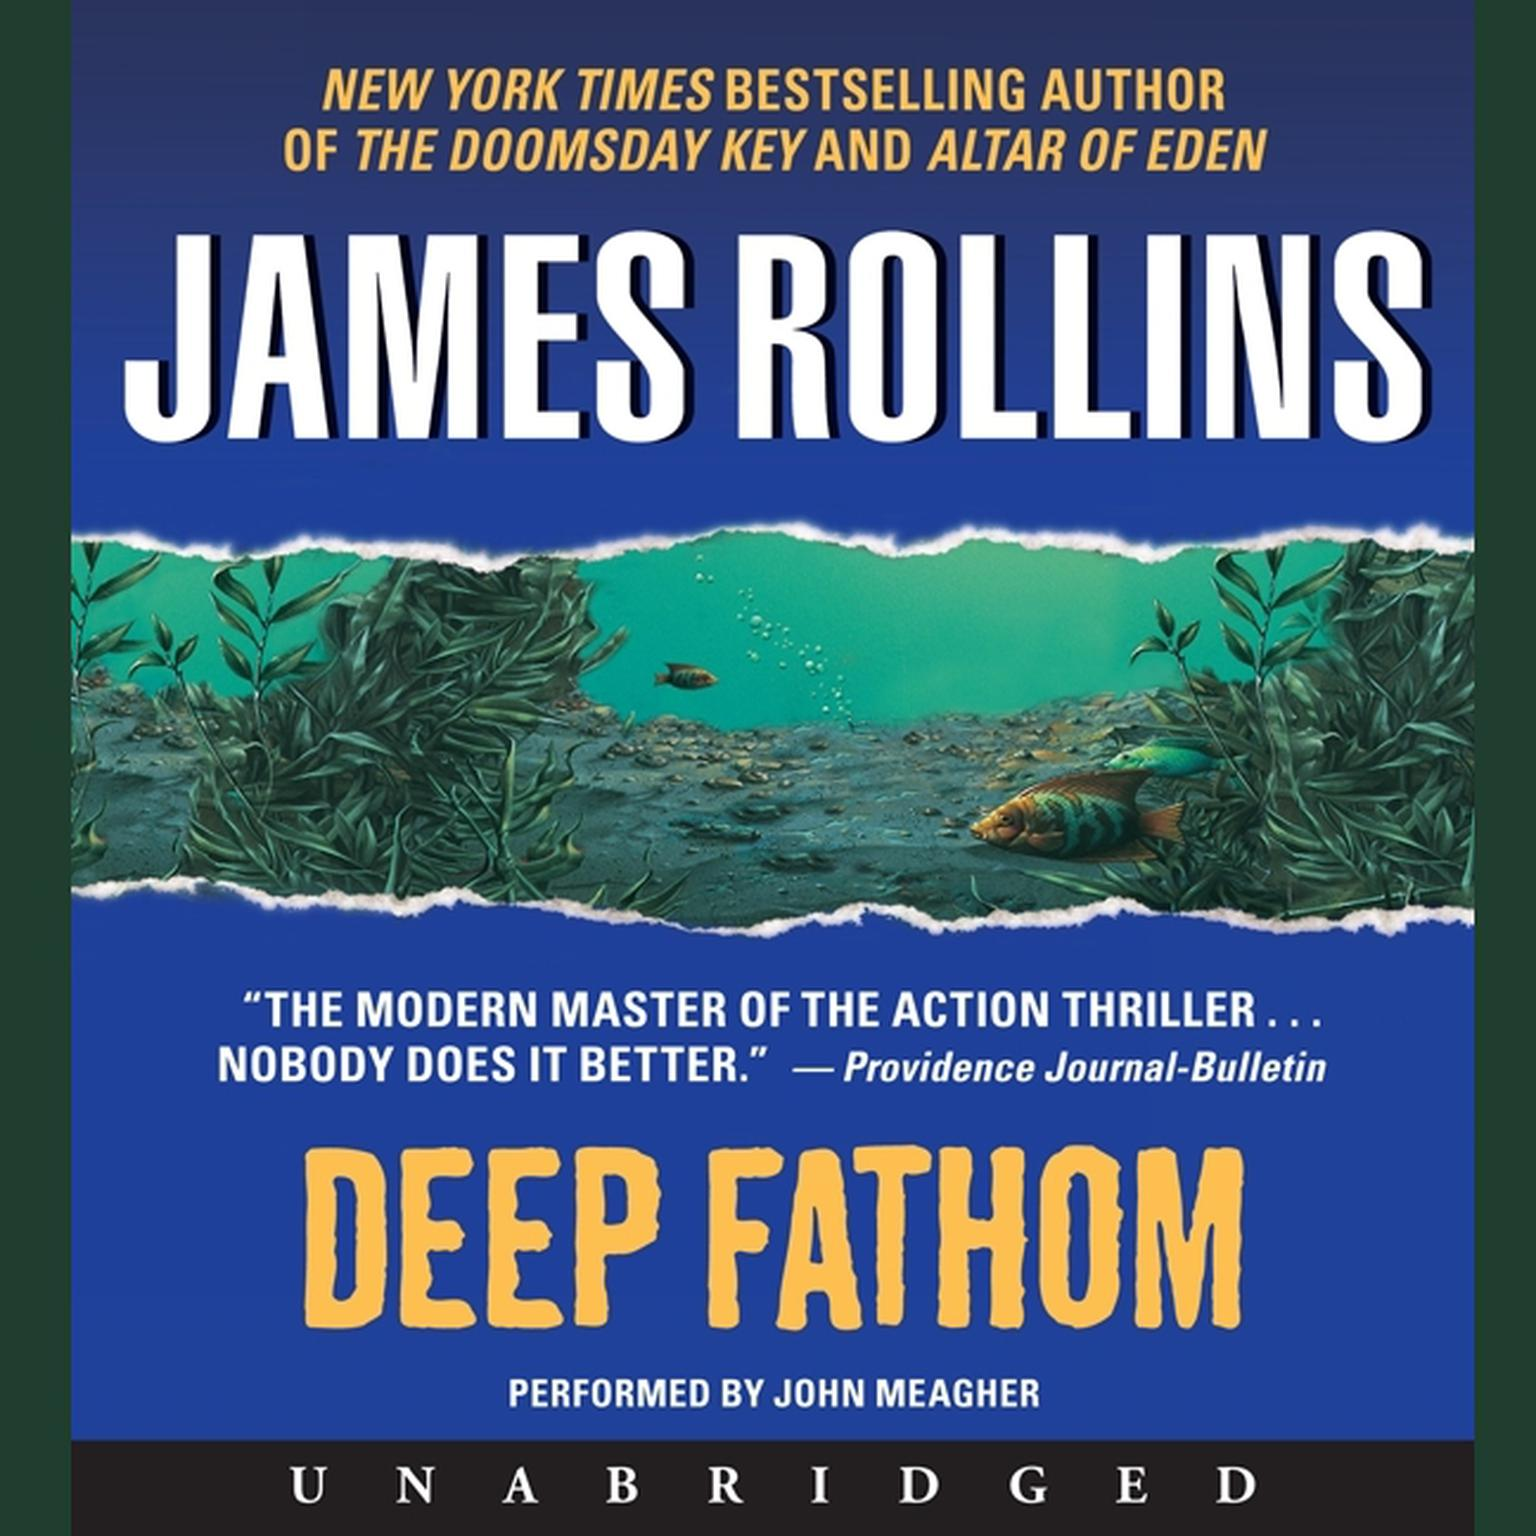 Printable Deep Fathom Audiobook Cover Art